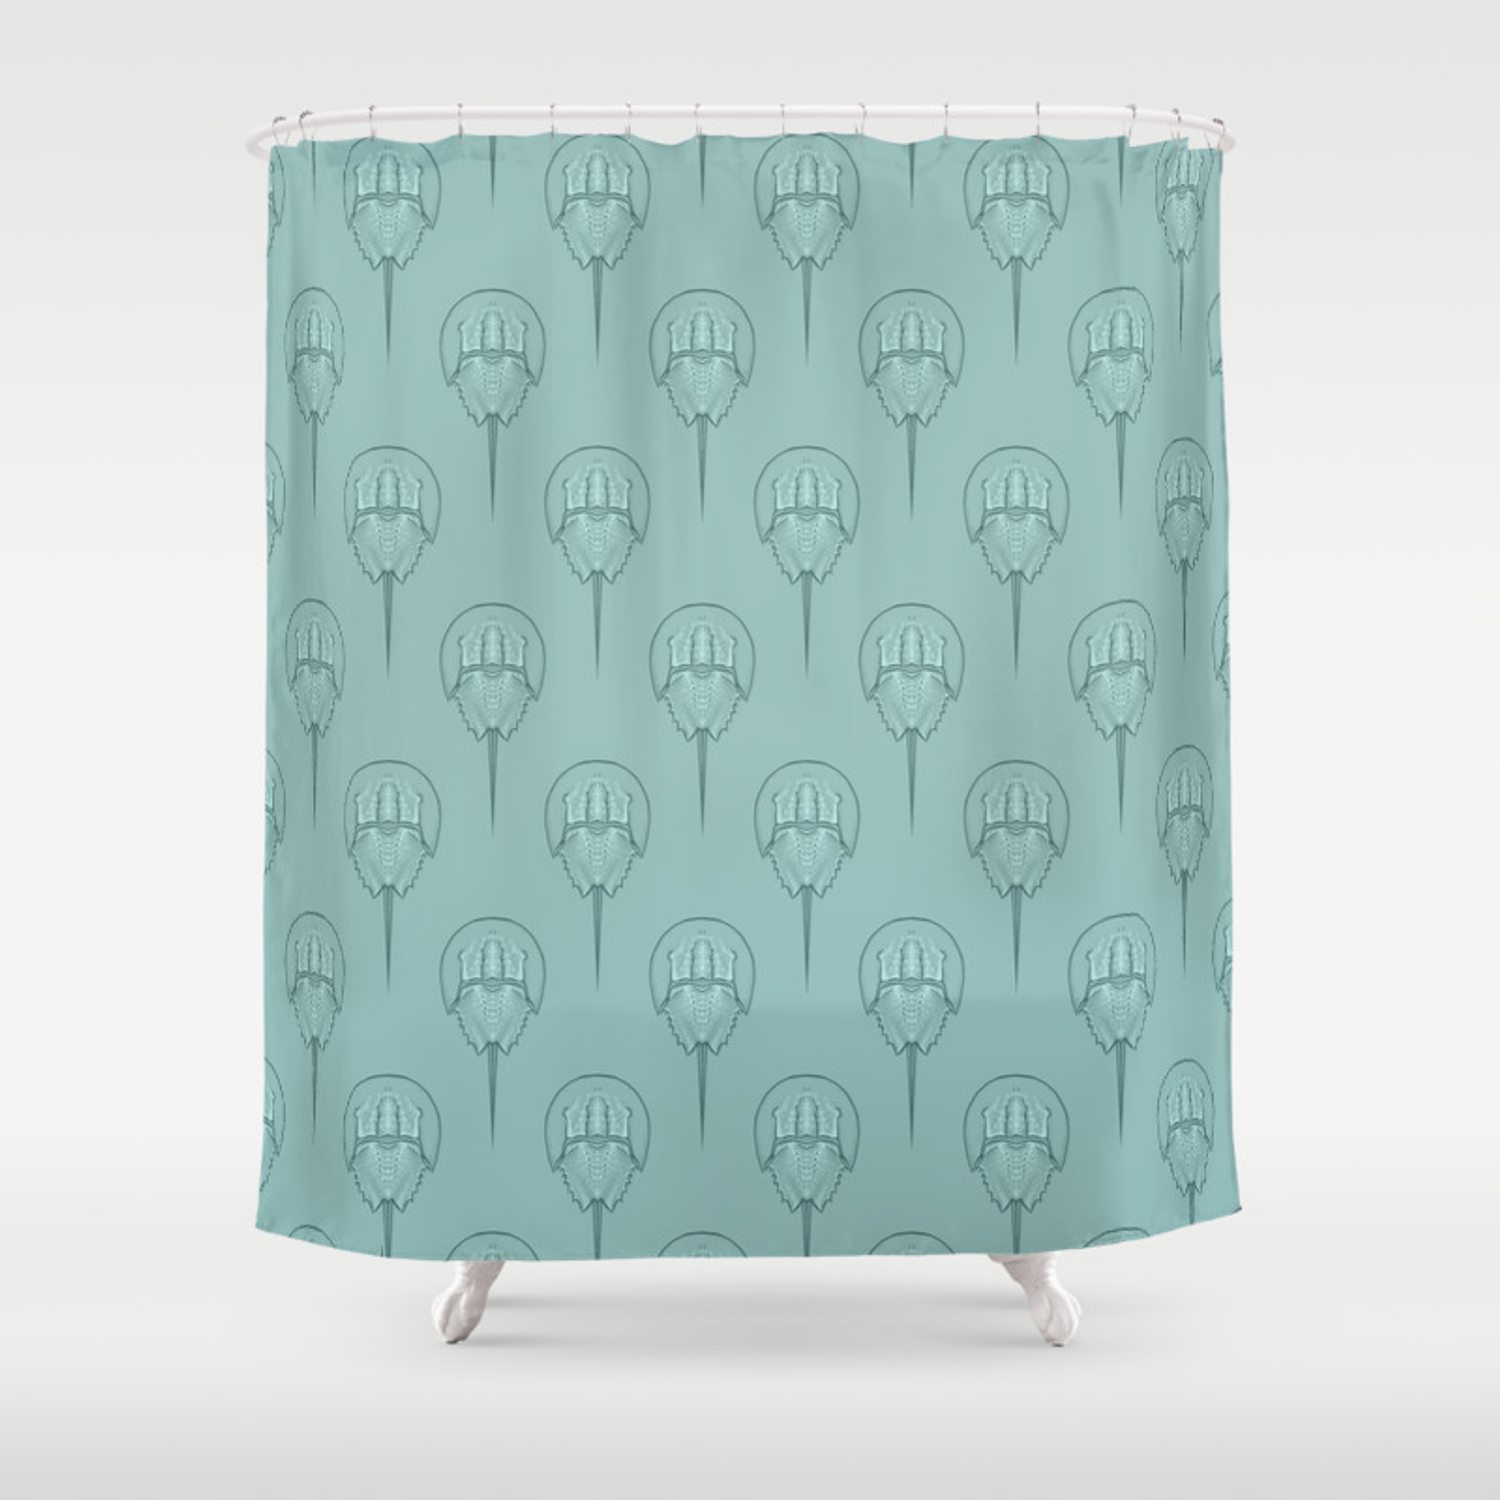 Horseshoes Shower Curtain